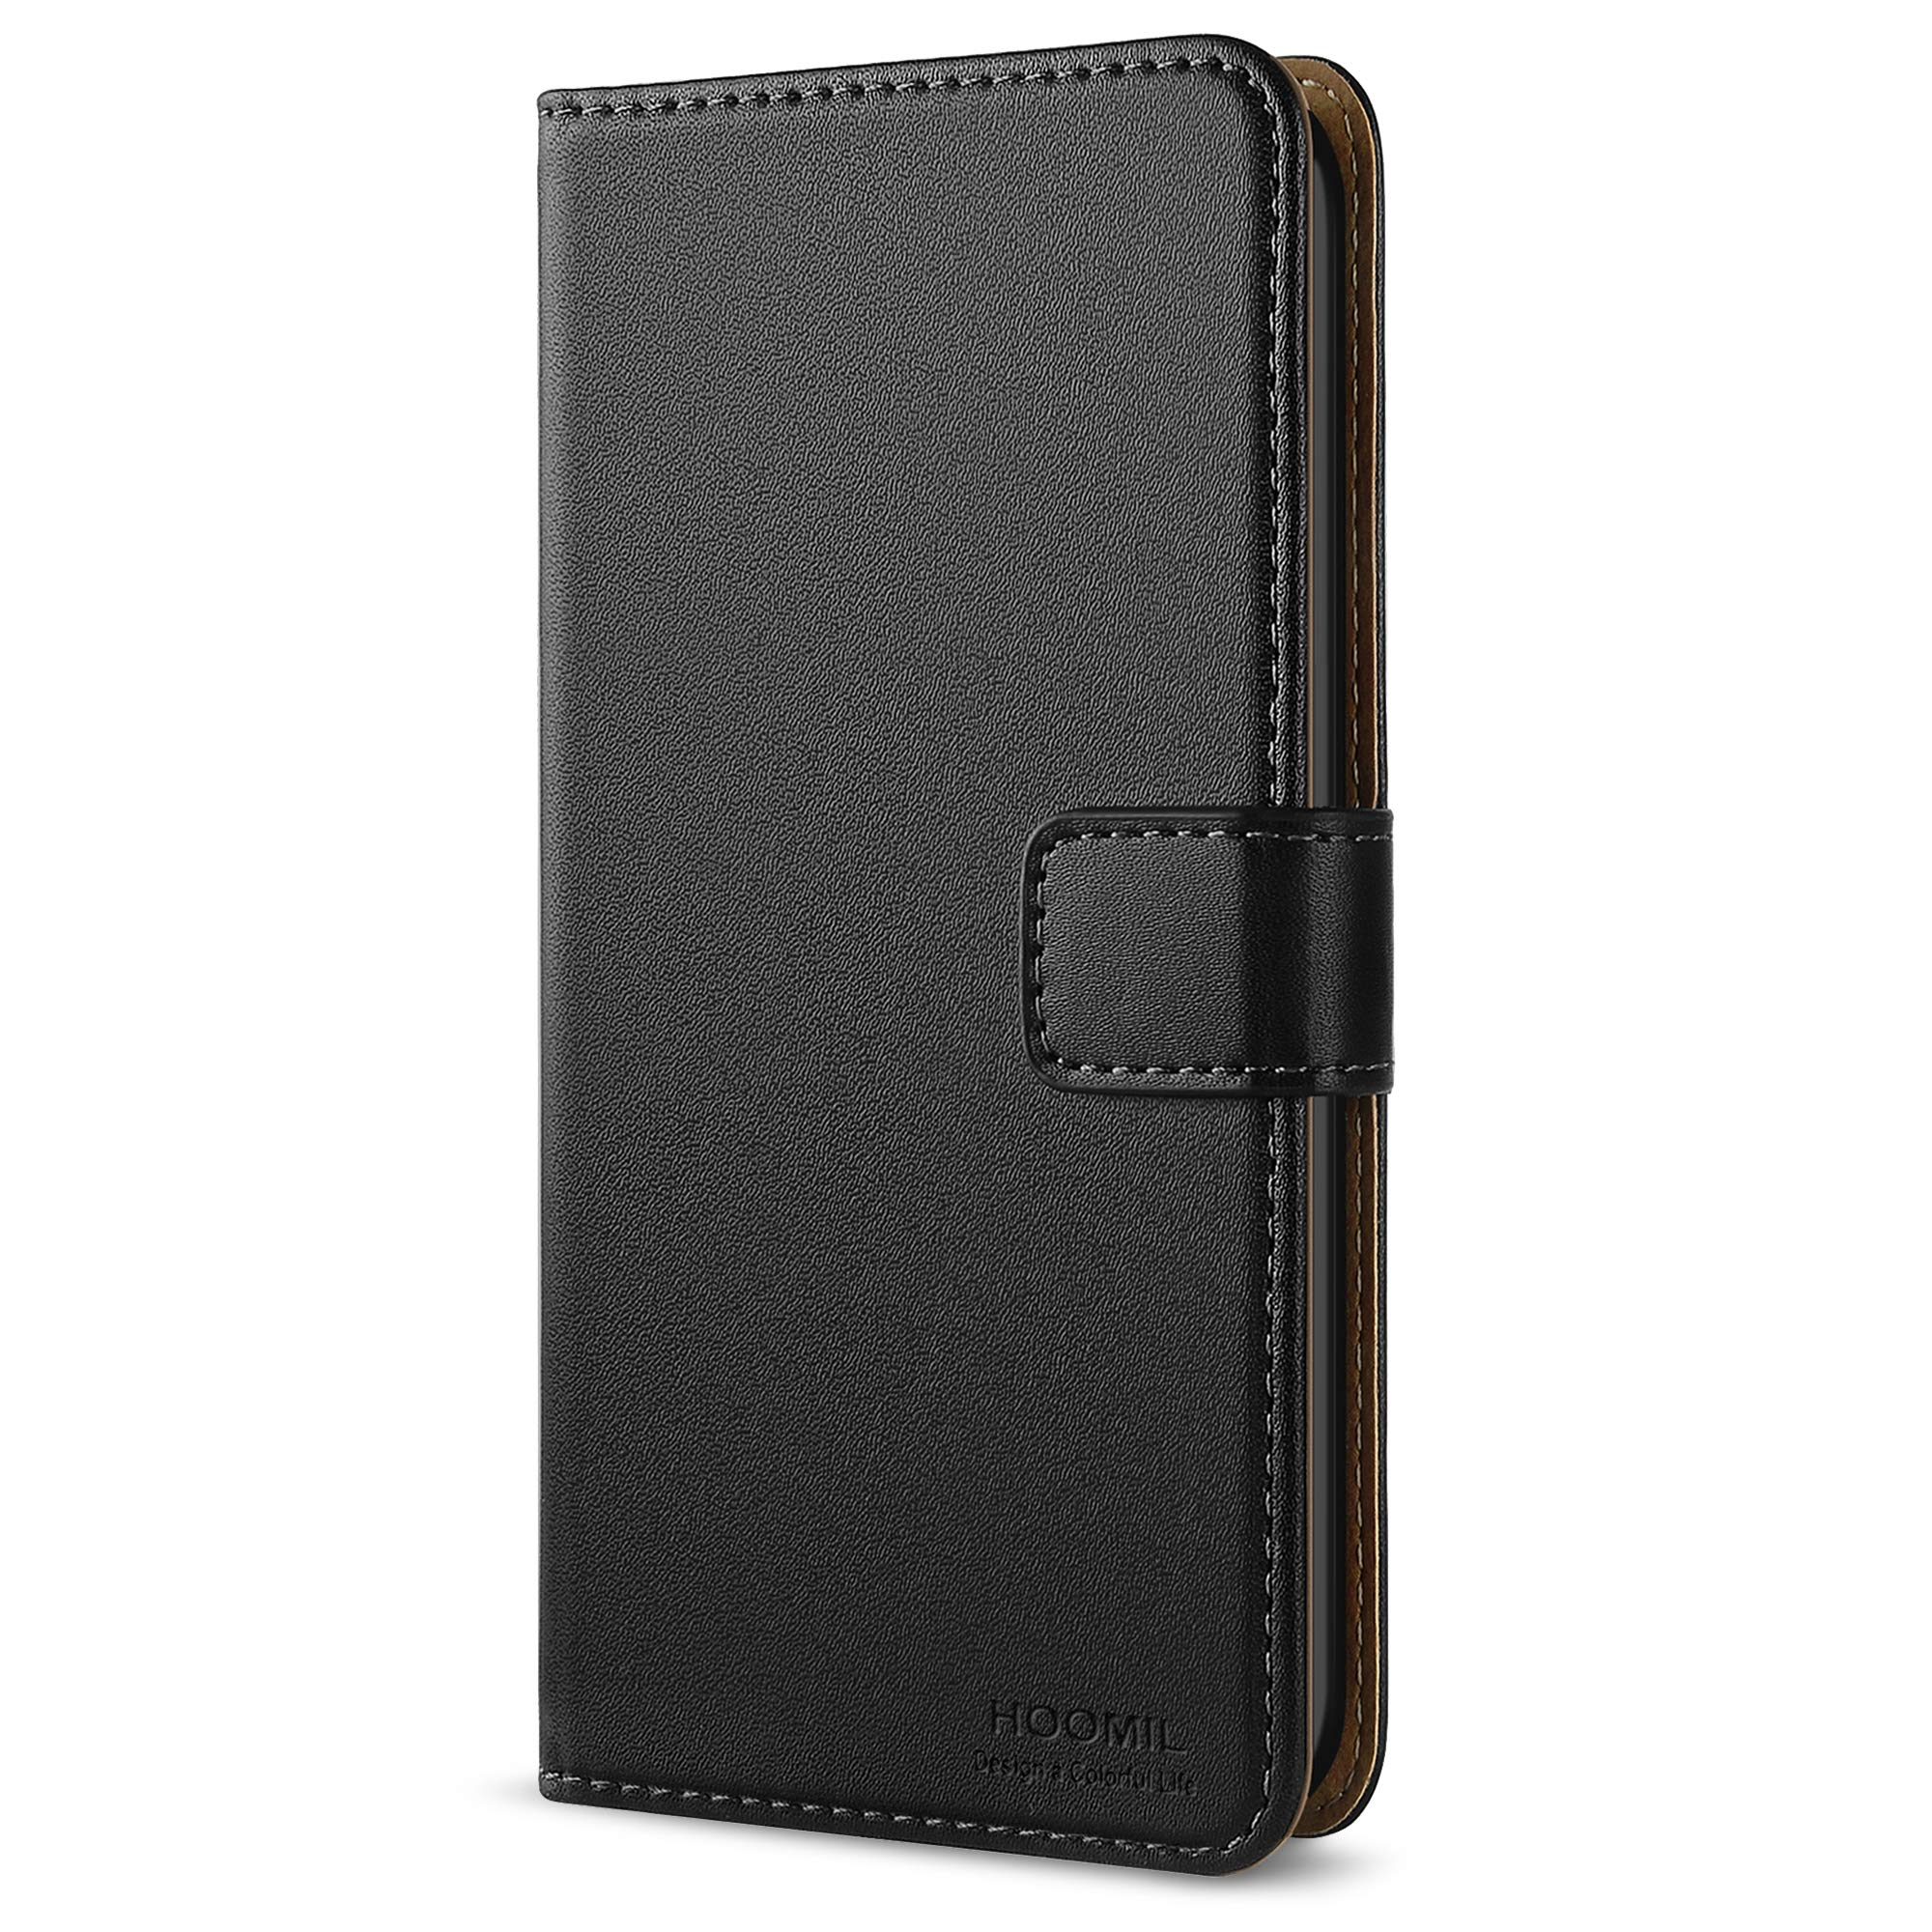 HOOMIL iPod Touch 6th Generation Case Premium Leather Apple iTouch 5/6 Case Protective Cover for Apple iPod Touch (5th Generation) - Black (HU3118)